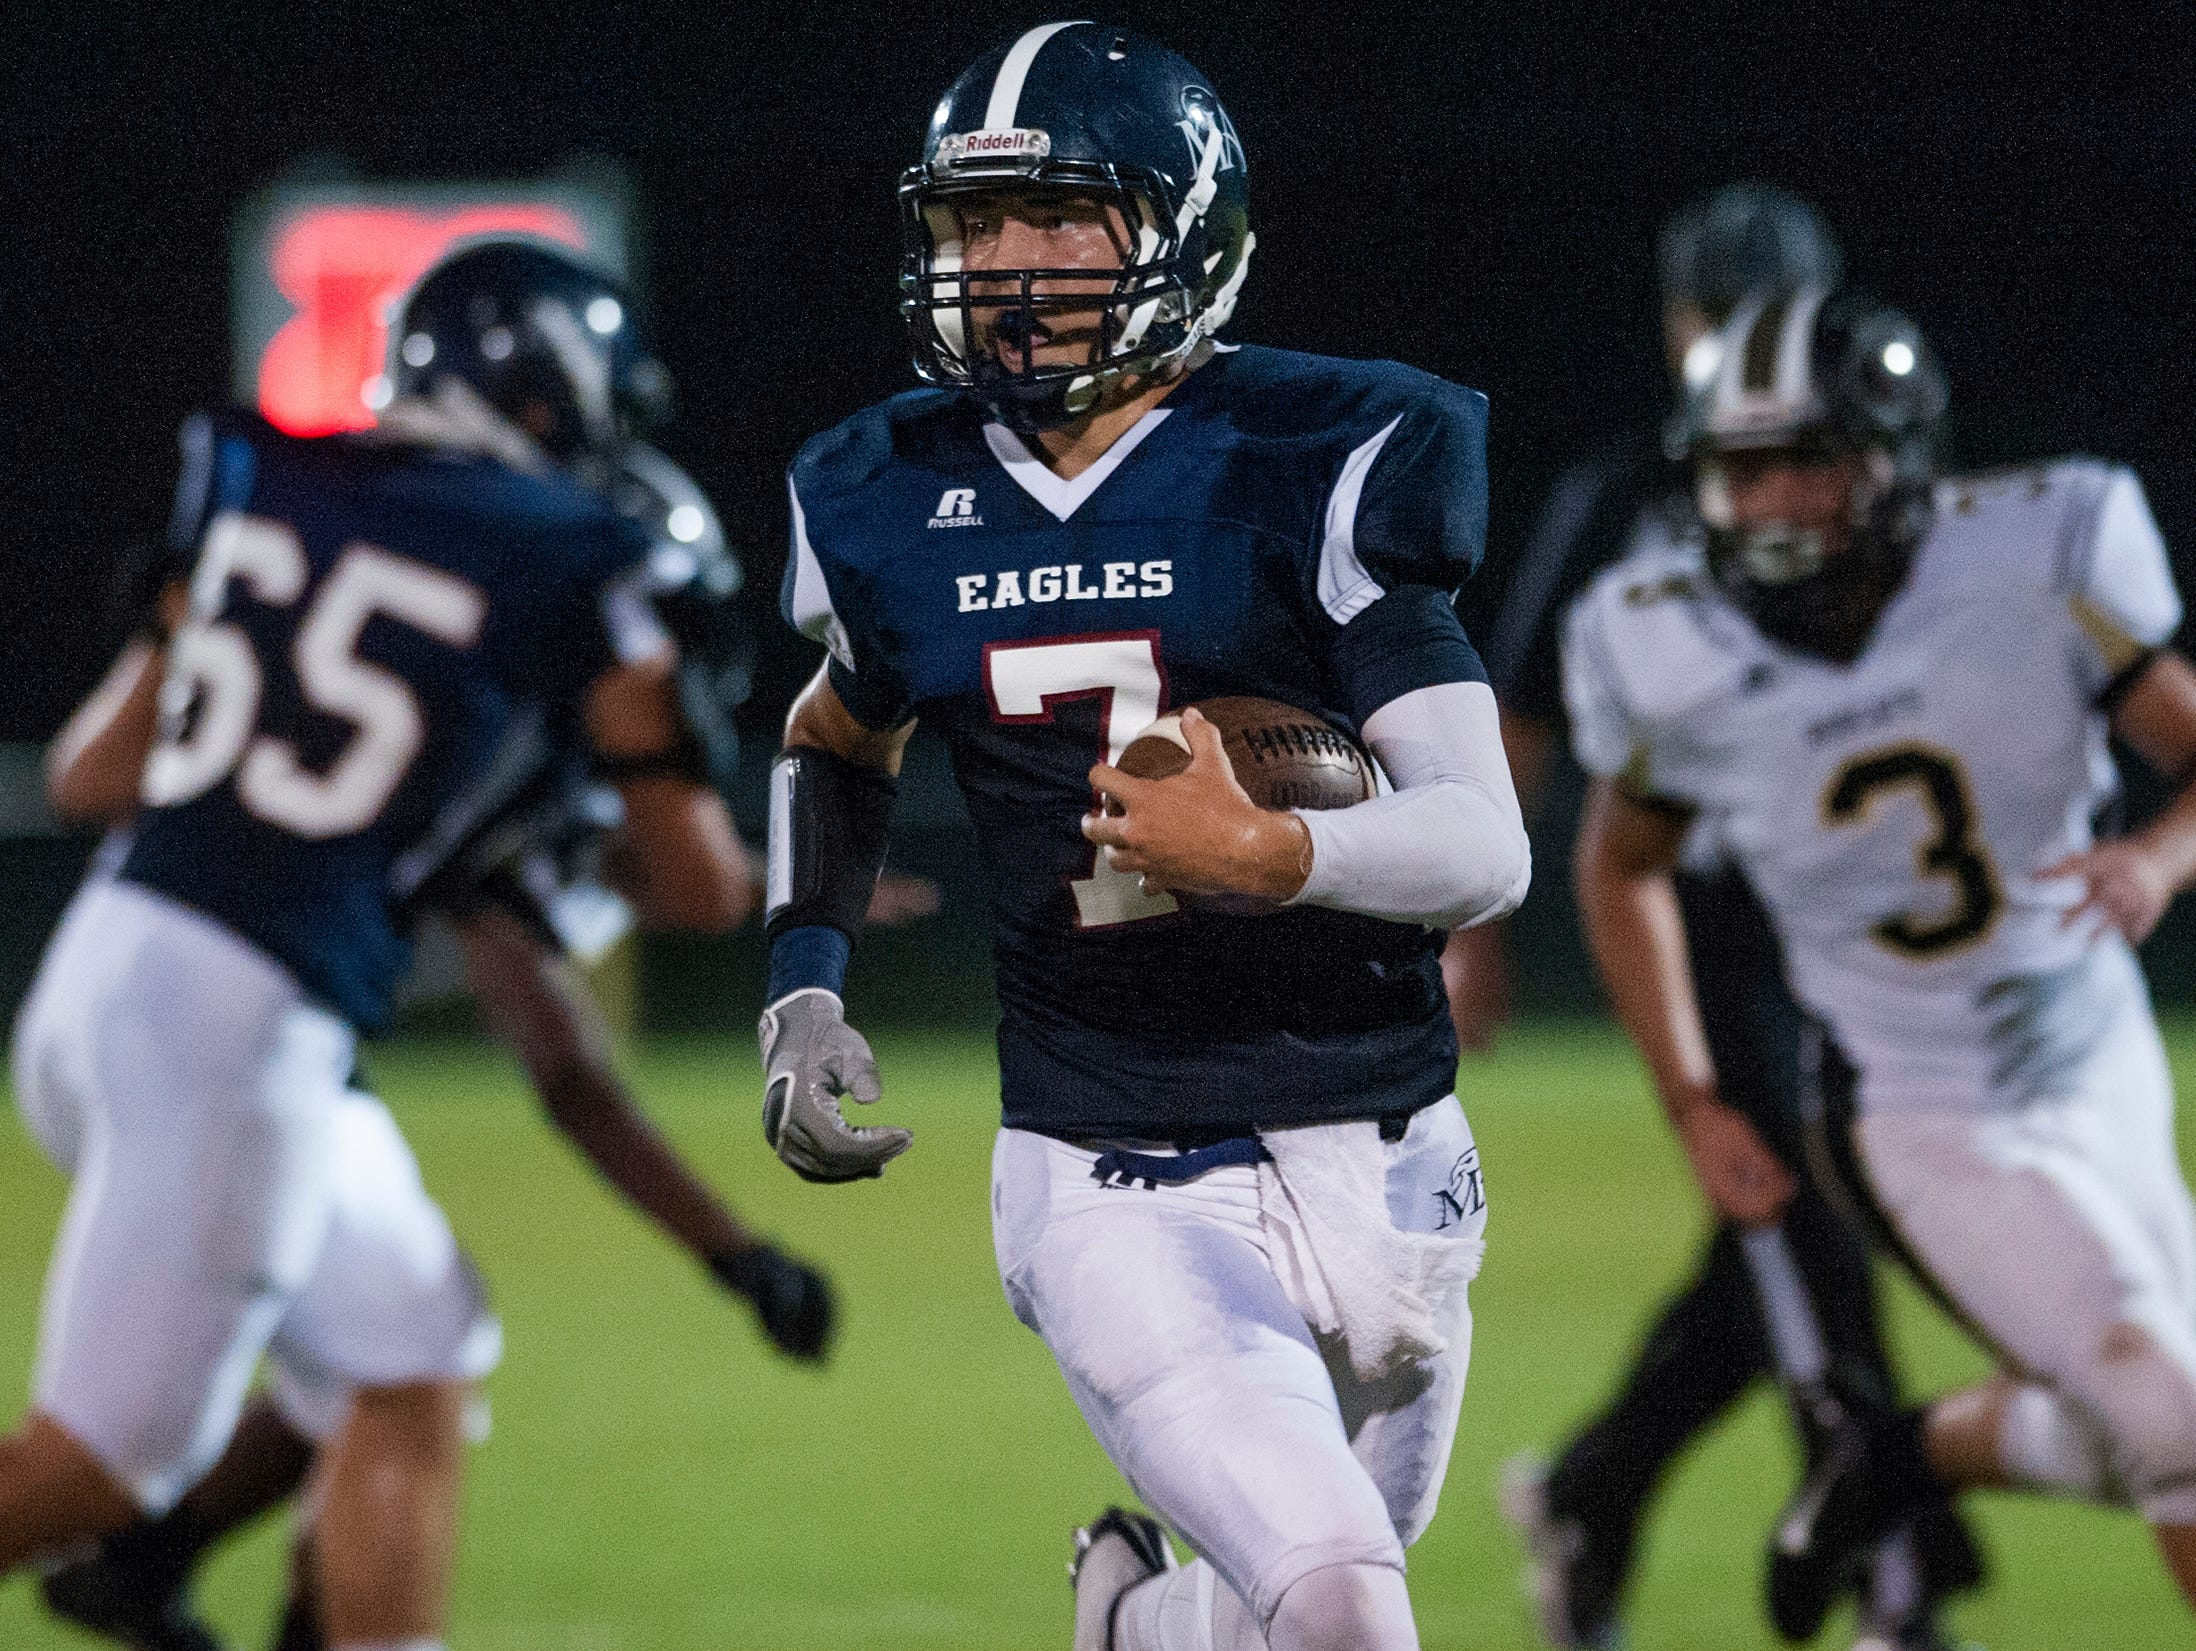 Montgomery Academy's Barton Lester (7) makes a long punt return against Beulah at the MA campus on Friday September 4, 2015 in Montgomery, Ala.